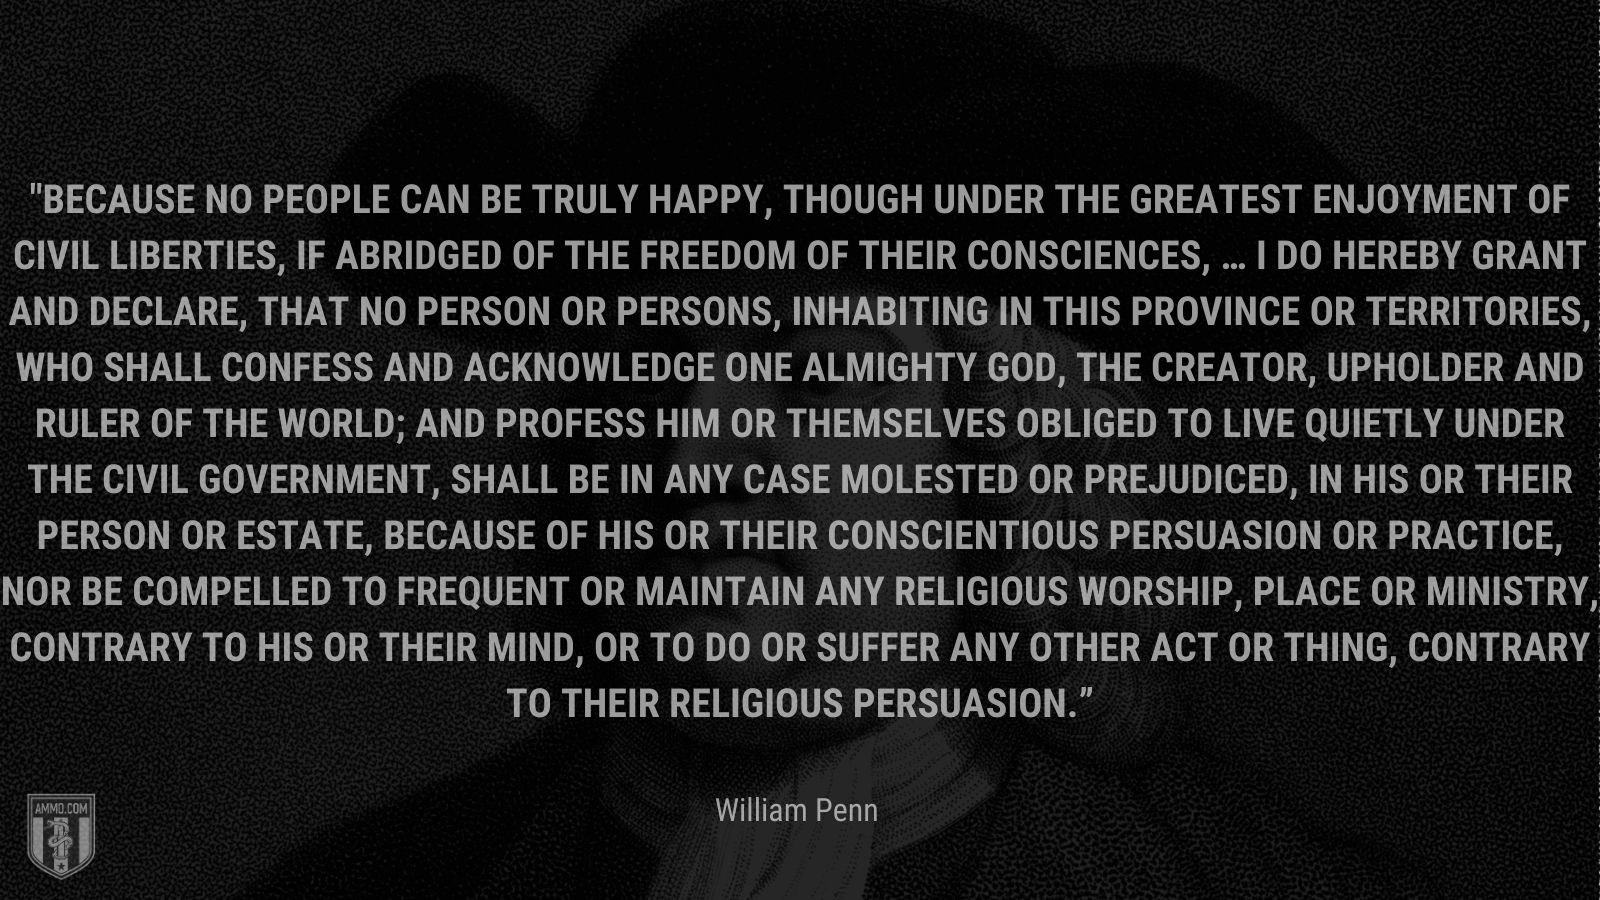 """""""Because no People can be truly happy, though under the greatest Enjoyment of Civil Liberties, if abridged of the Freedom of their Consciences, … I do hereby grant and declare, That no Person or Persons, inhabiting in this Province or Territories, who shall confess and acknowledge One almighty God, the Creator, Upholder and Ruler of the World; and profess him or themselves obliged to live quietly under the Civil Government, shall be in any Case molested or prejudiced, in his or their Person or Estate, because of his or their conscientious Persuasion or Practice, nor be compelled to frequent or maintain any religious Worship, Place or Ministry, contrary to his or their Mind, or to do or suffer any other Act or Thing, contrary to their religious Persuasion."""" -William Pen"""